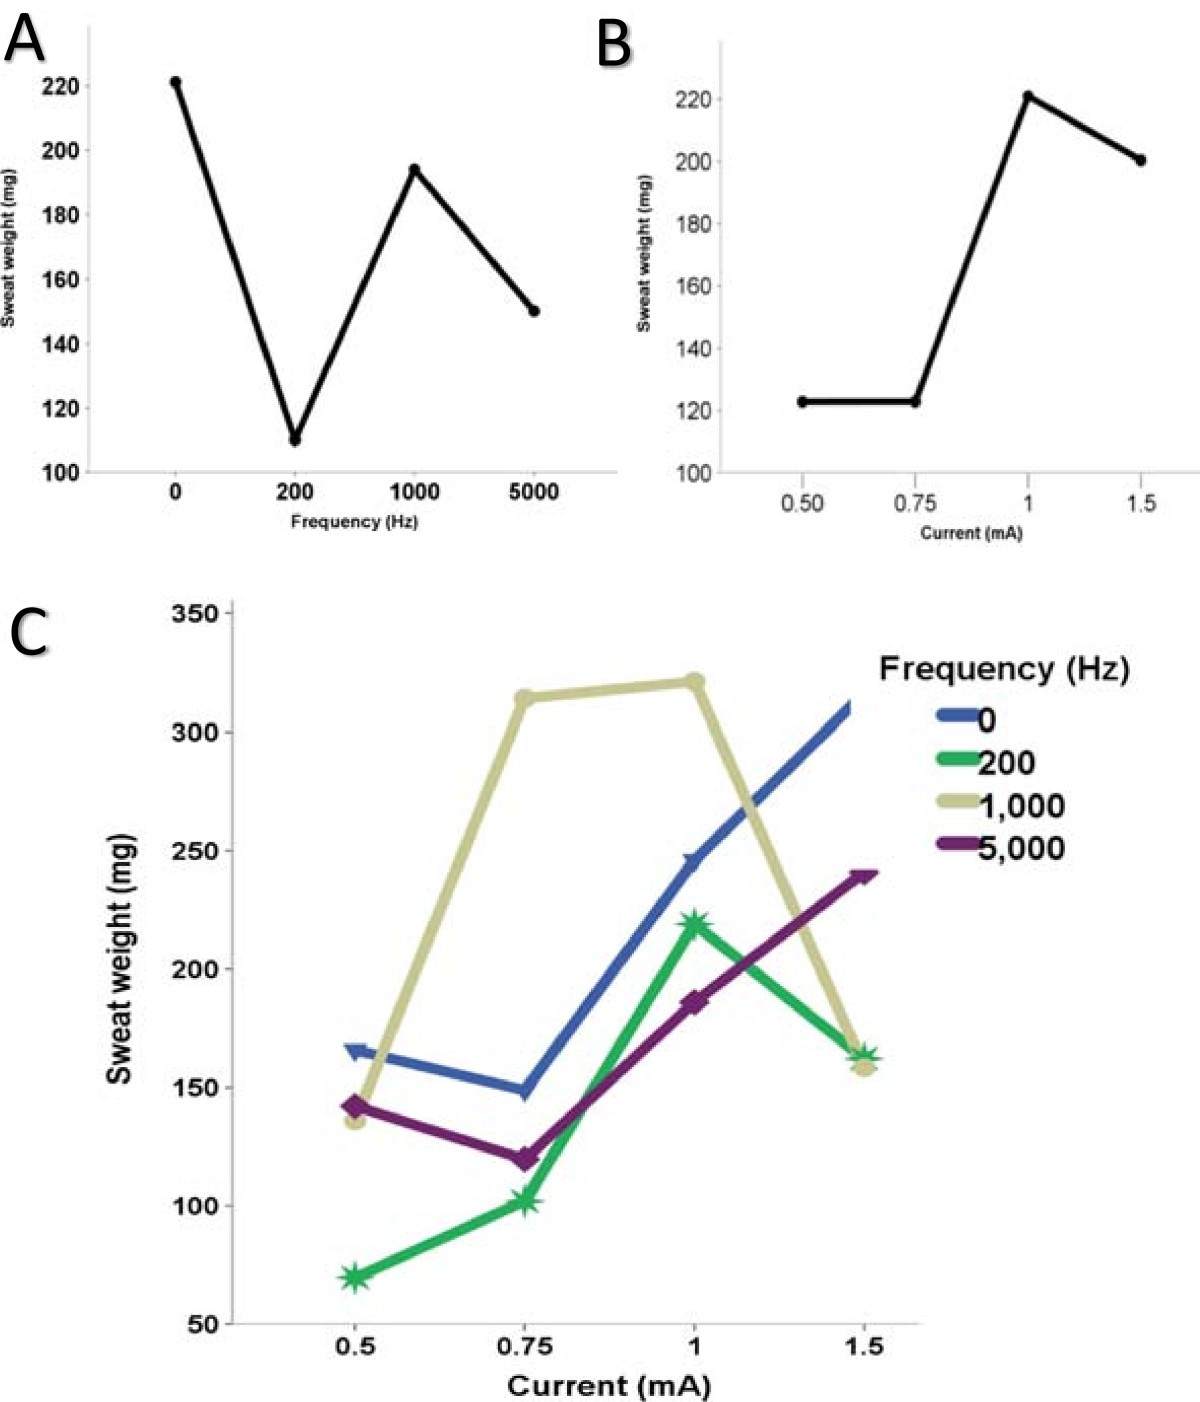 Pulsed Direct And Constant Currents In The Pilocarpine Electrical Installation Durante Electric Inc Pa Figure 1